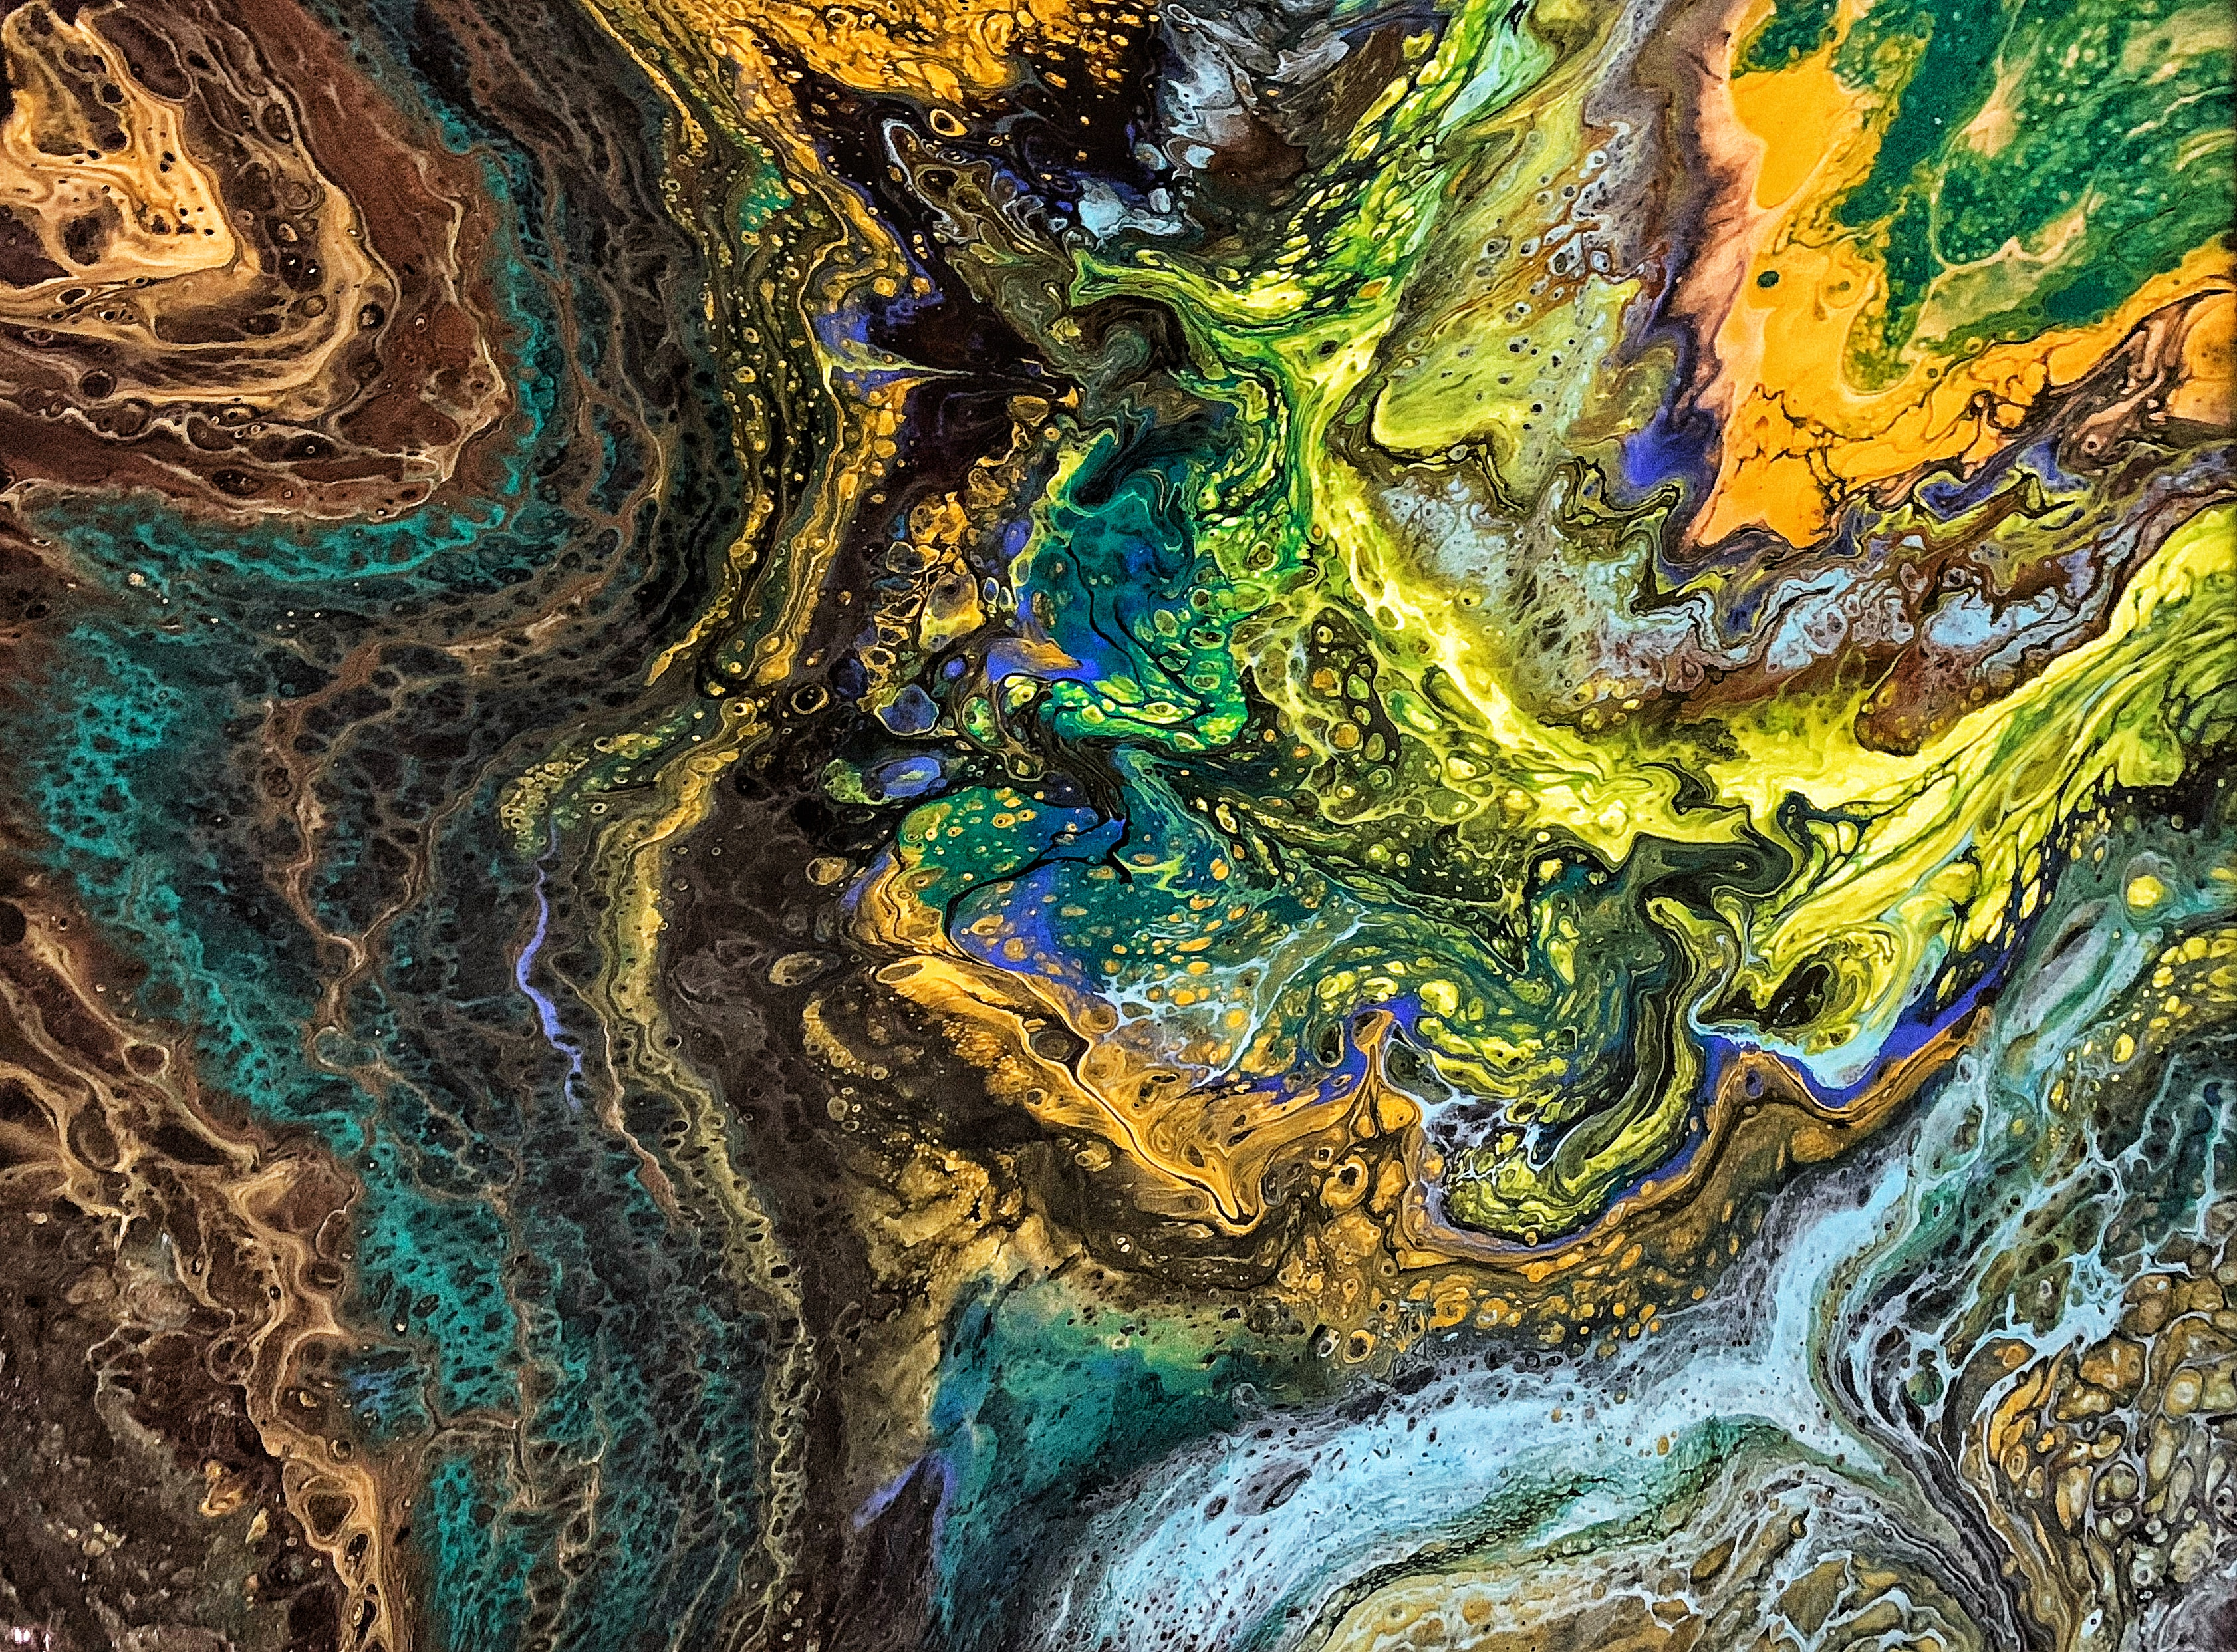 127386 download wallpaper Abstract, Divorces, Multicolored, Motley, Texture, Liquid screensavers and pictures for free